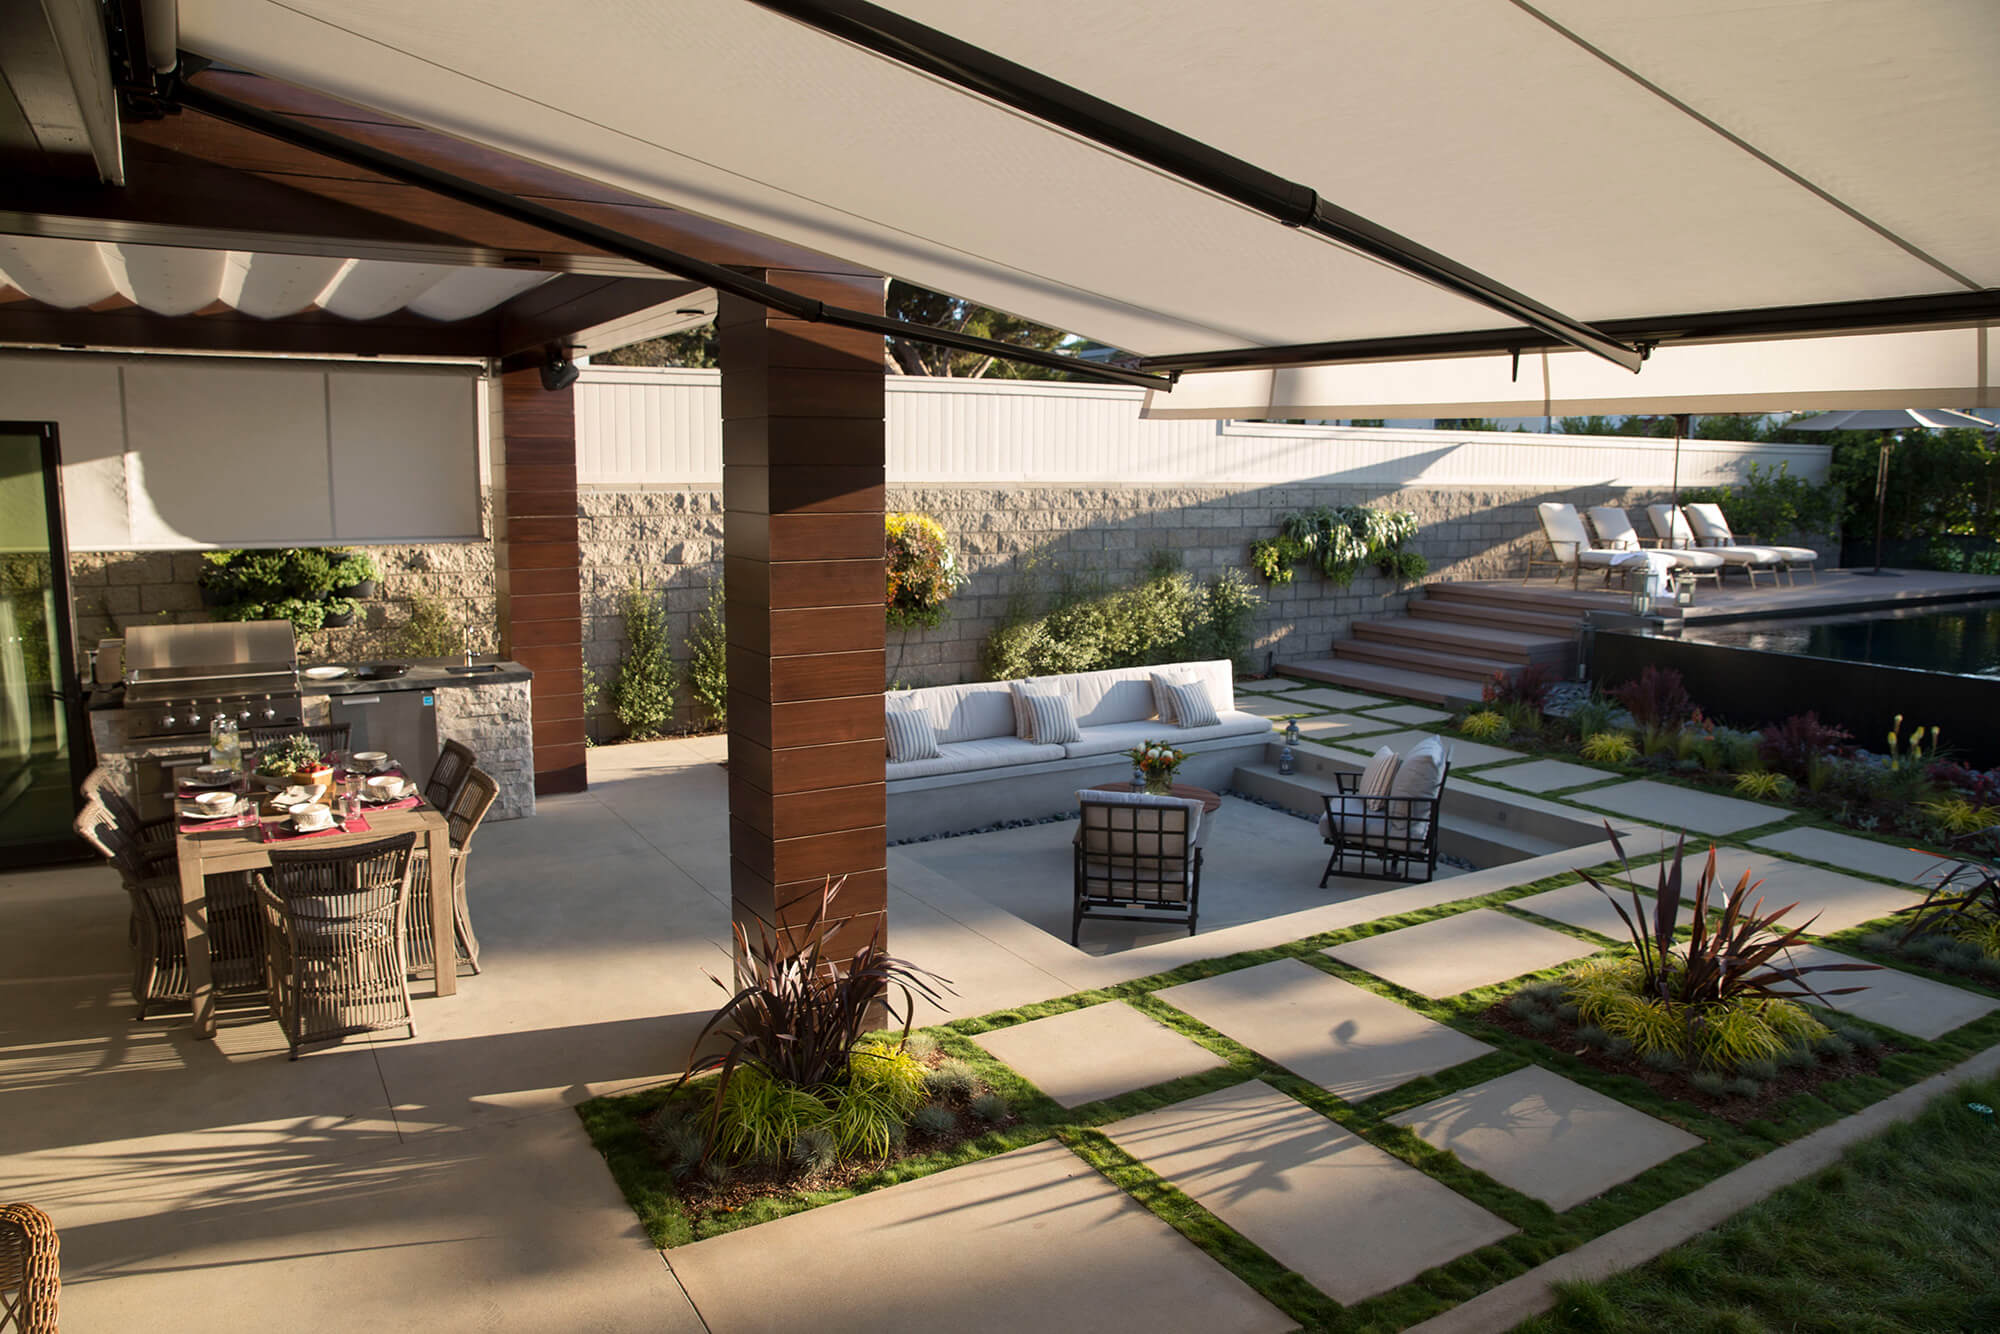 Gentil ... Patio Underneath A Retractable Awning Made With Silver Sunbrella Fabric  ...